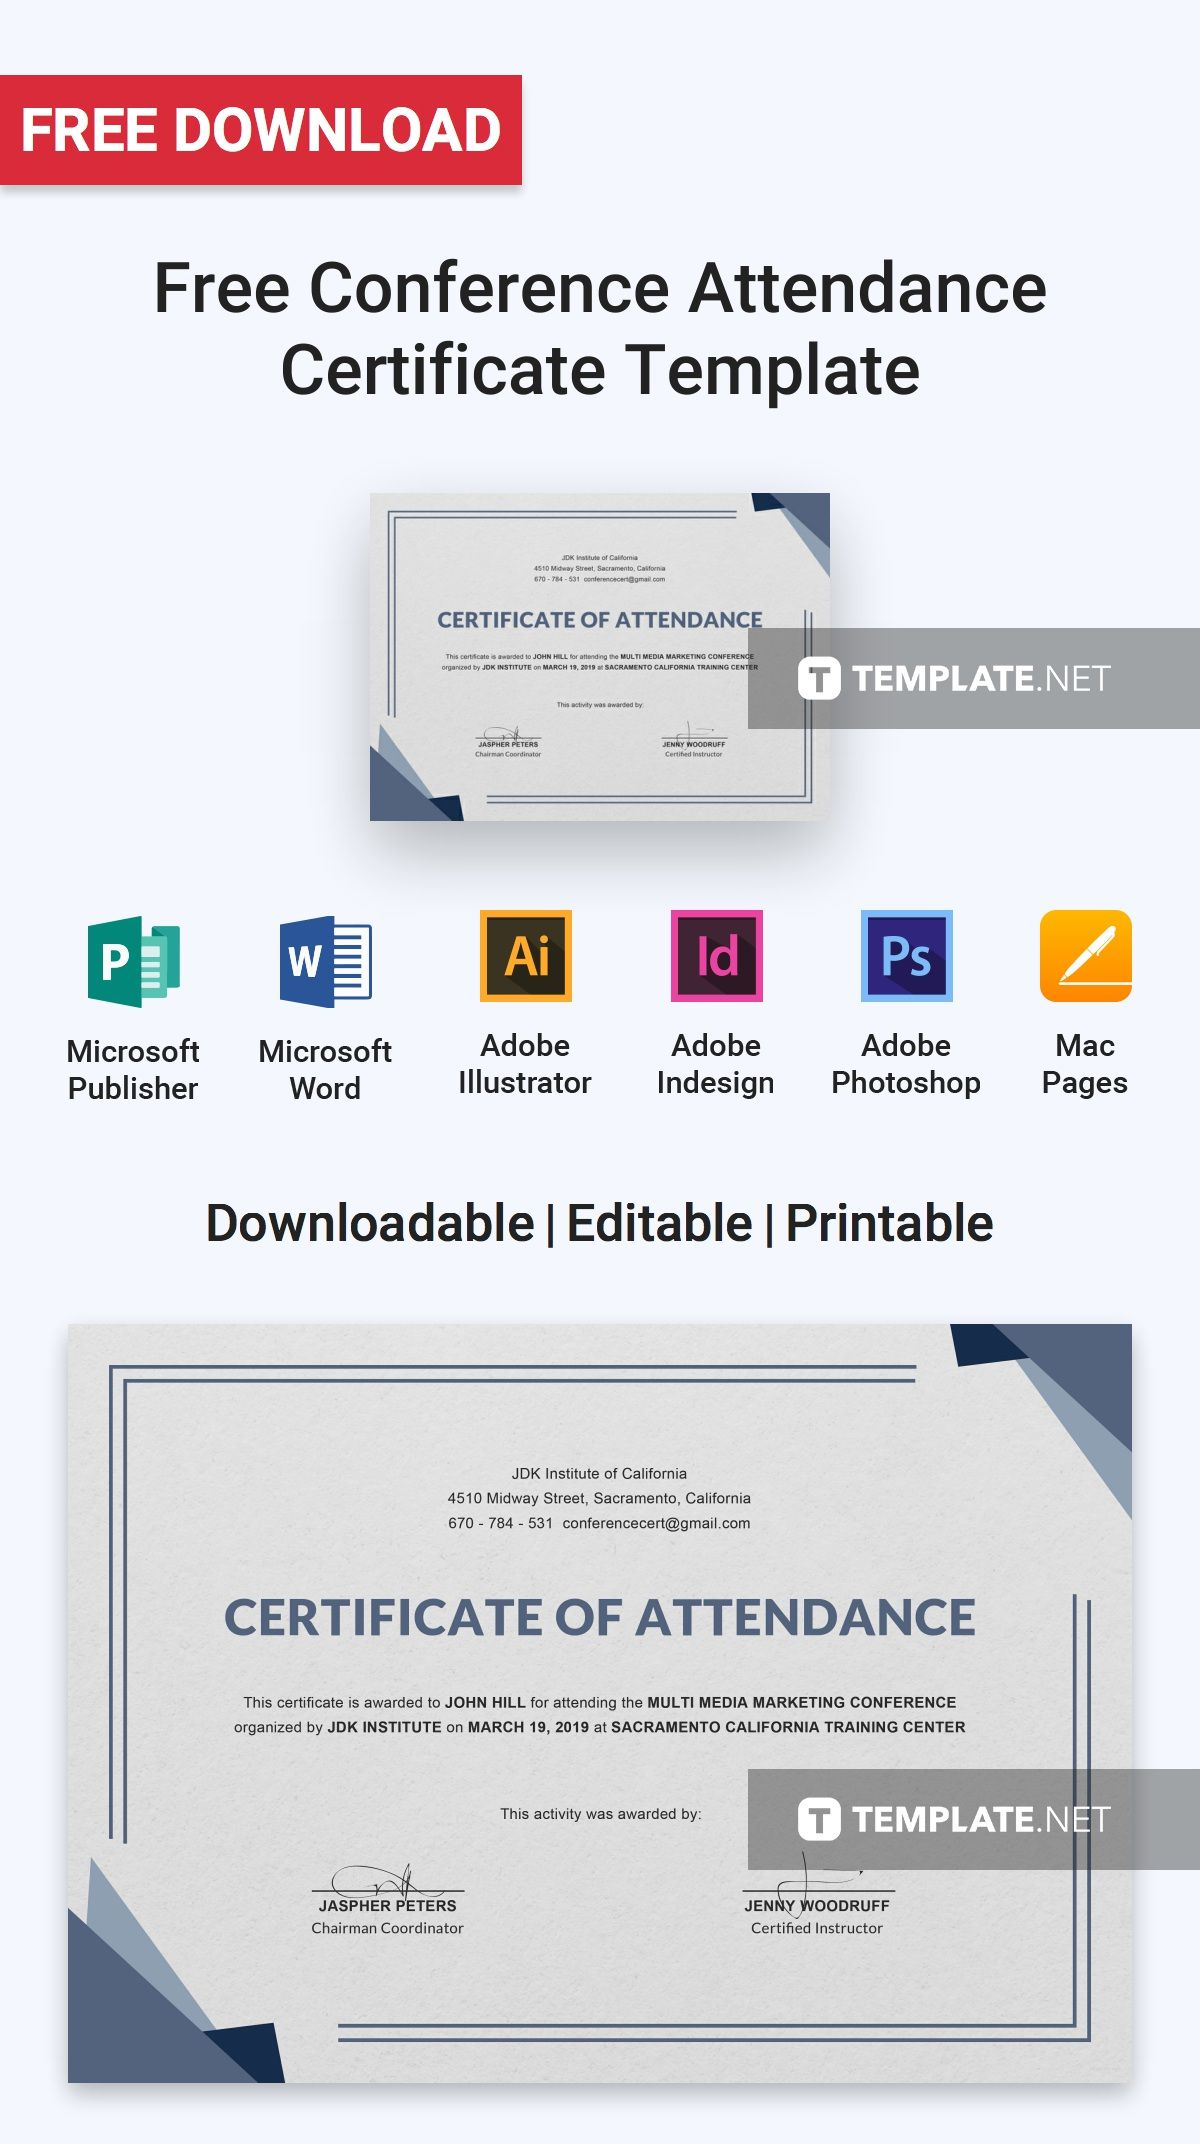 free conference attendance certificate free certificate templates pinterest attendance certificate certificate and template - Conference Certificate Template